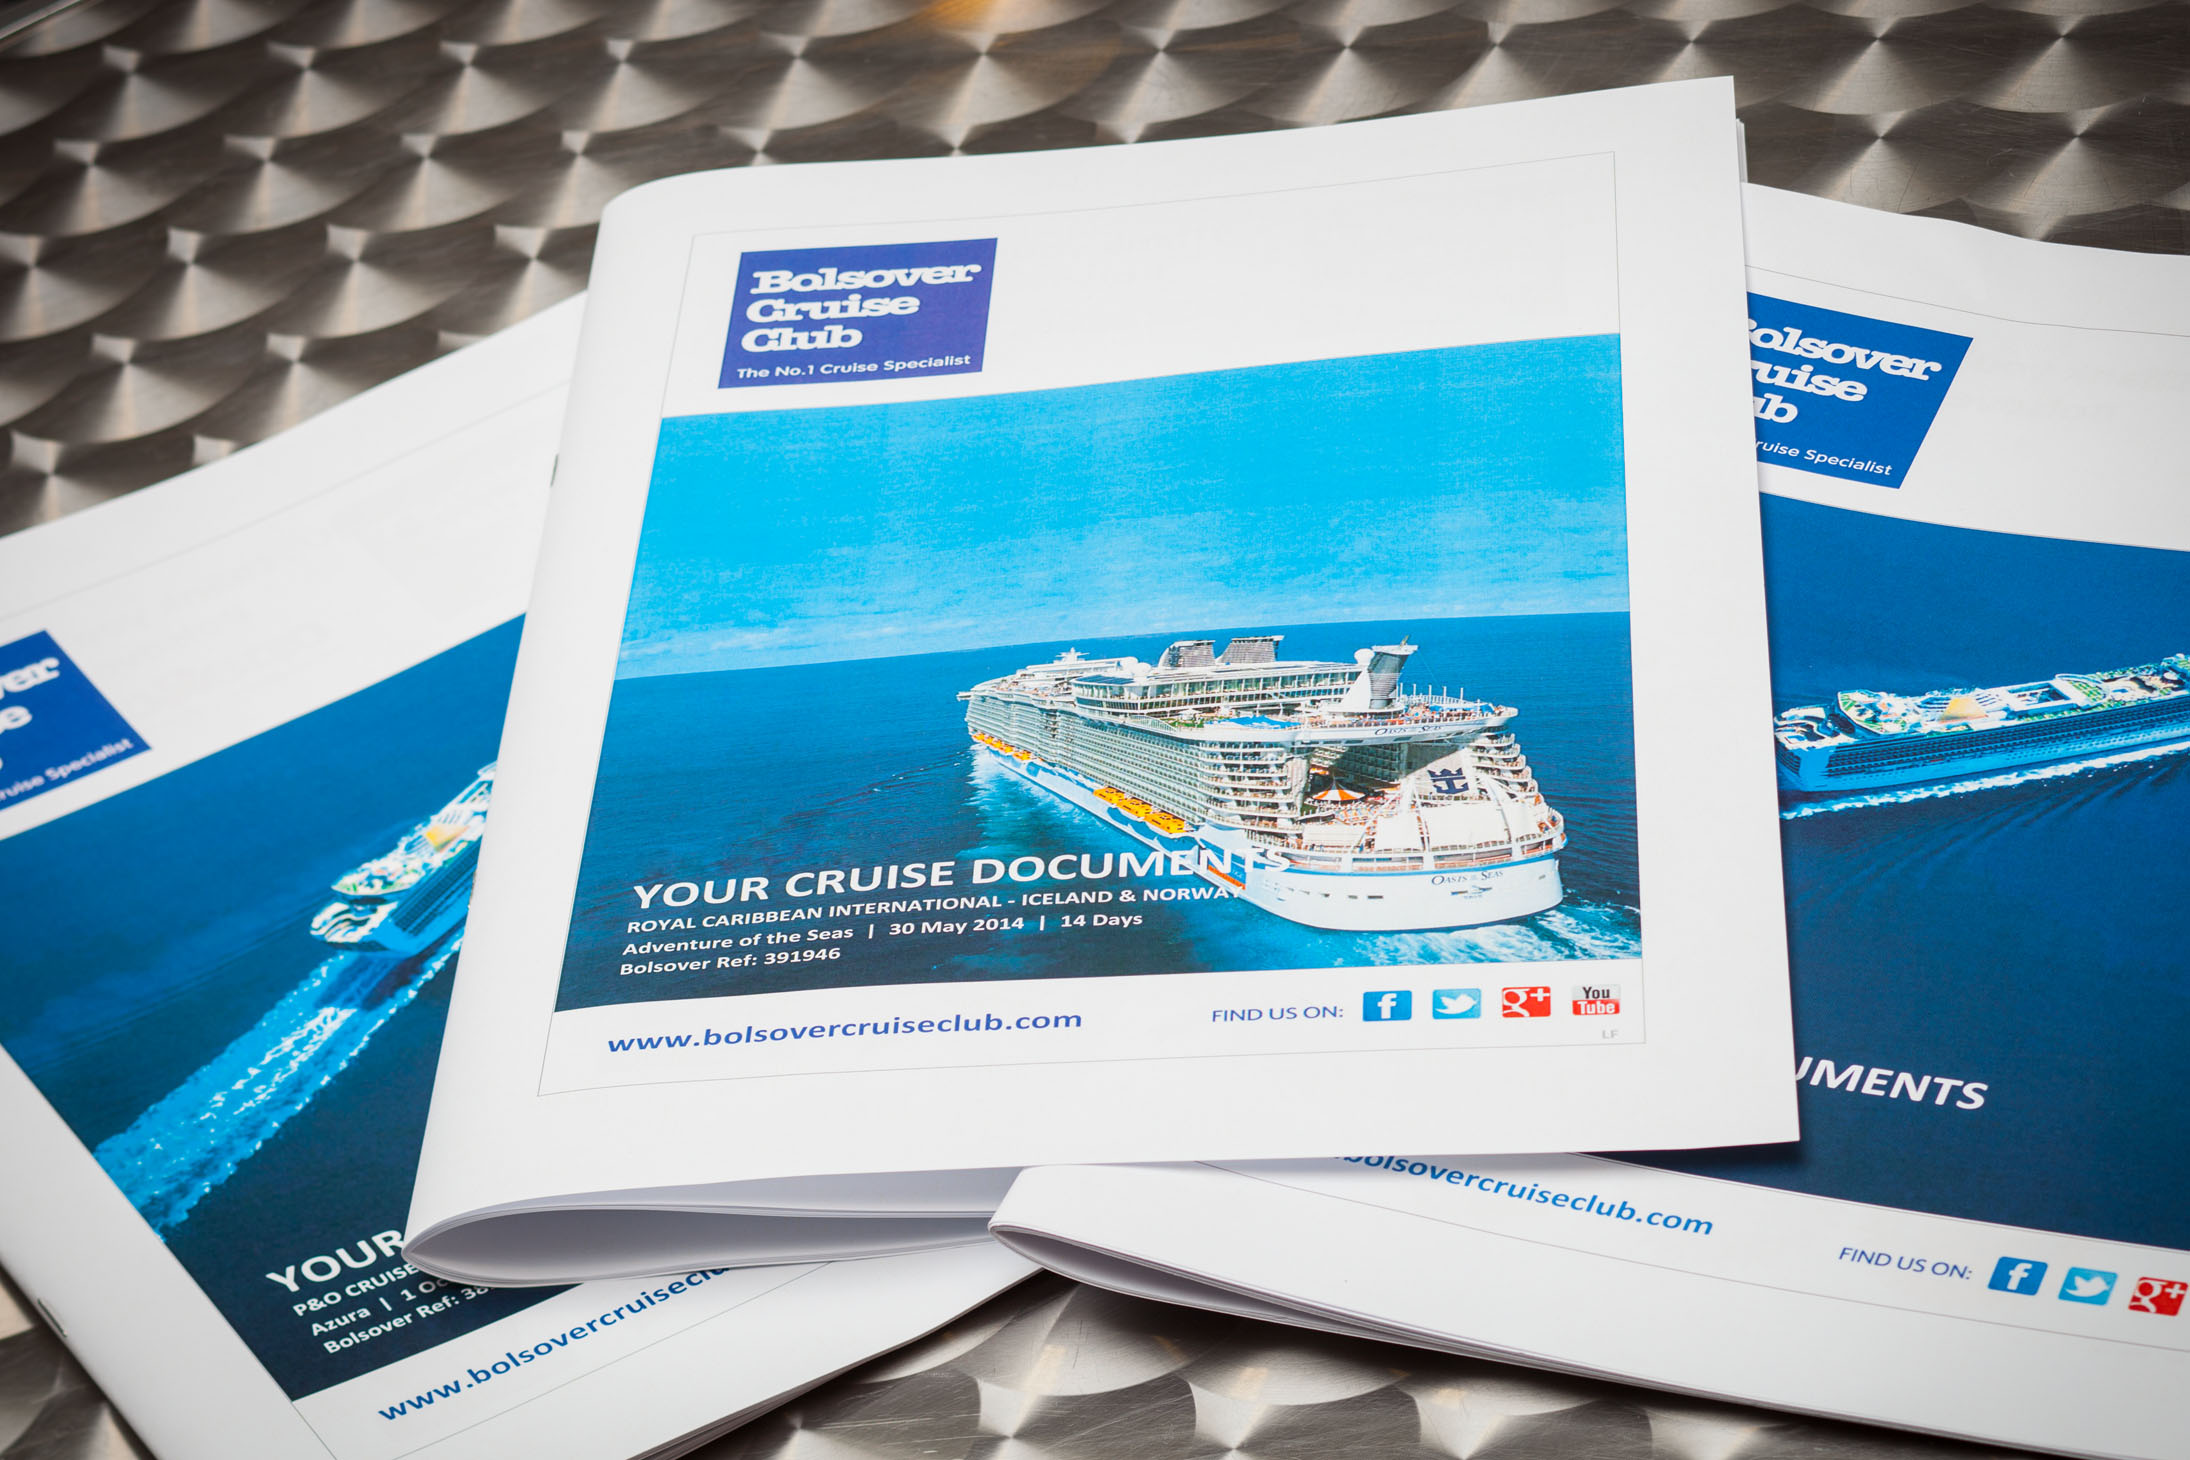 Bolsover Cruise Club cruise documents folder, which you will receive upon booking a cruise with us.